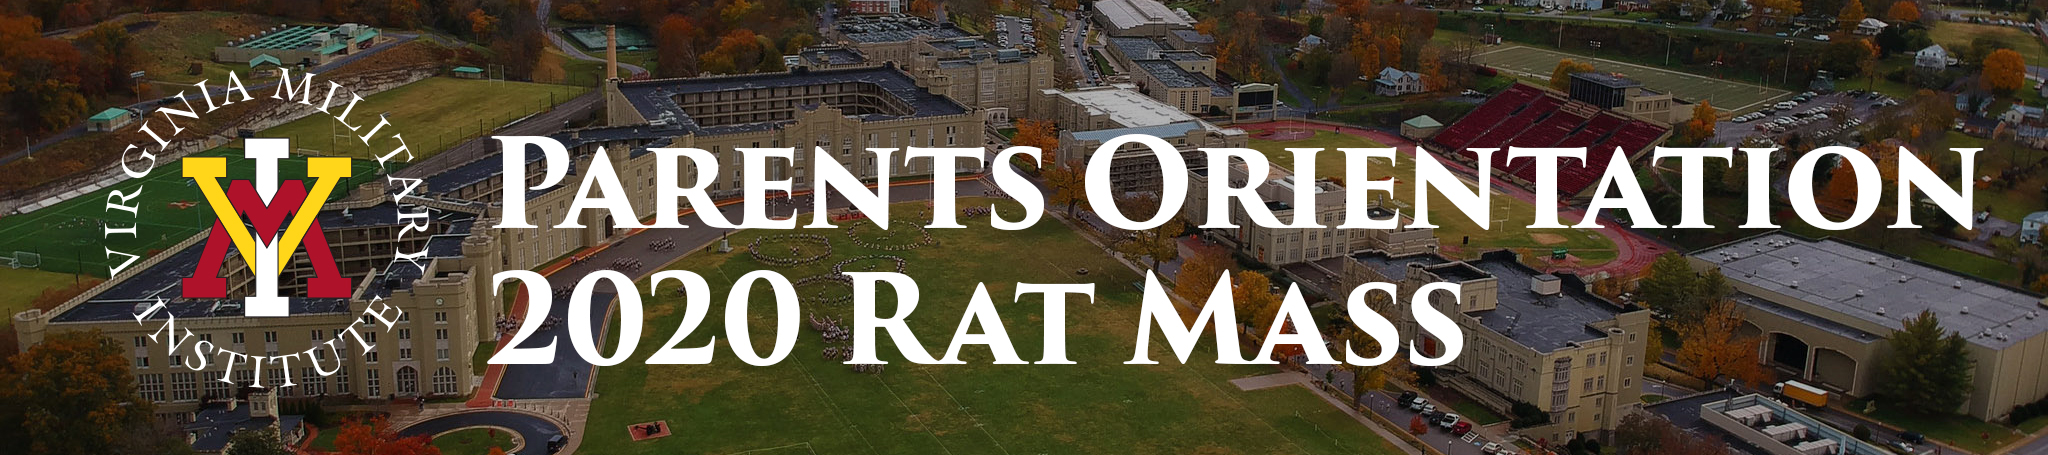 VMI Logo and text which reads Parents Orientation 2020 Rat Mass